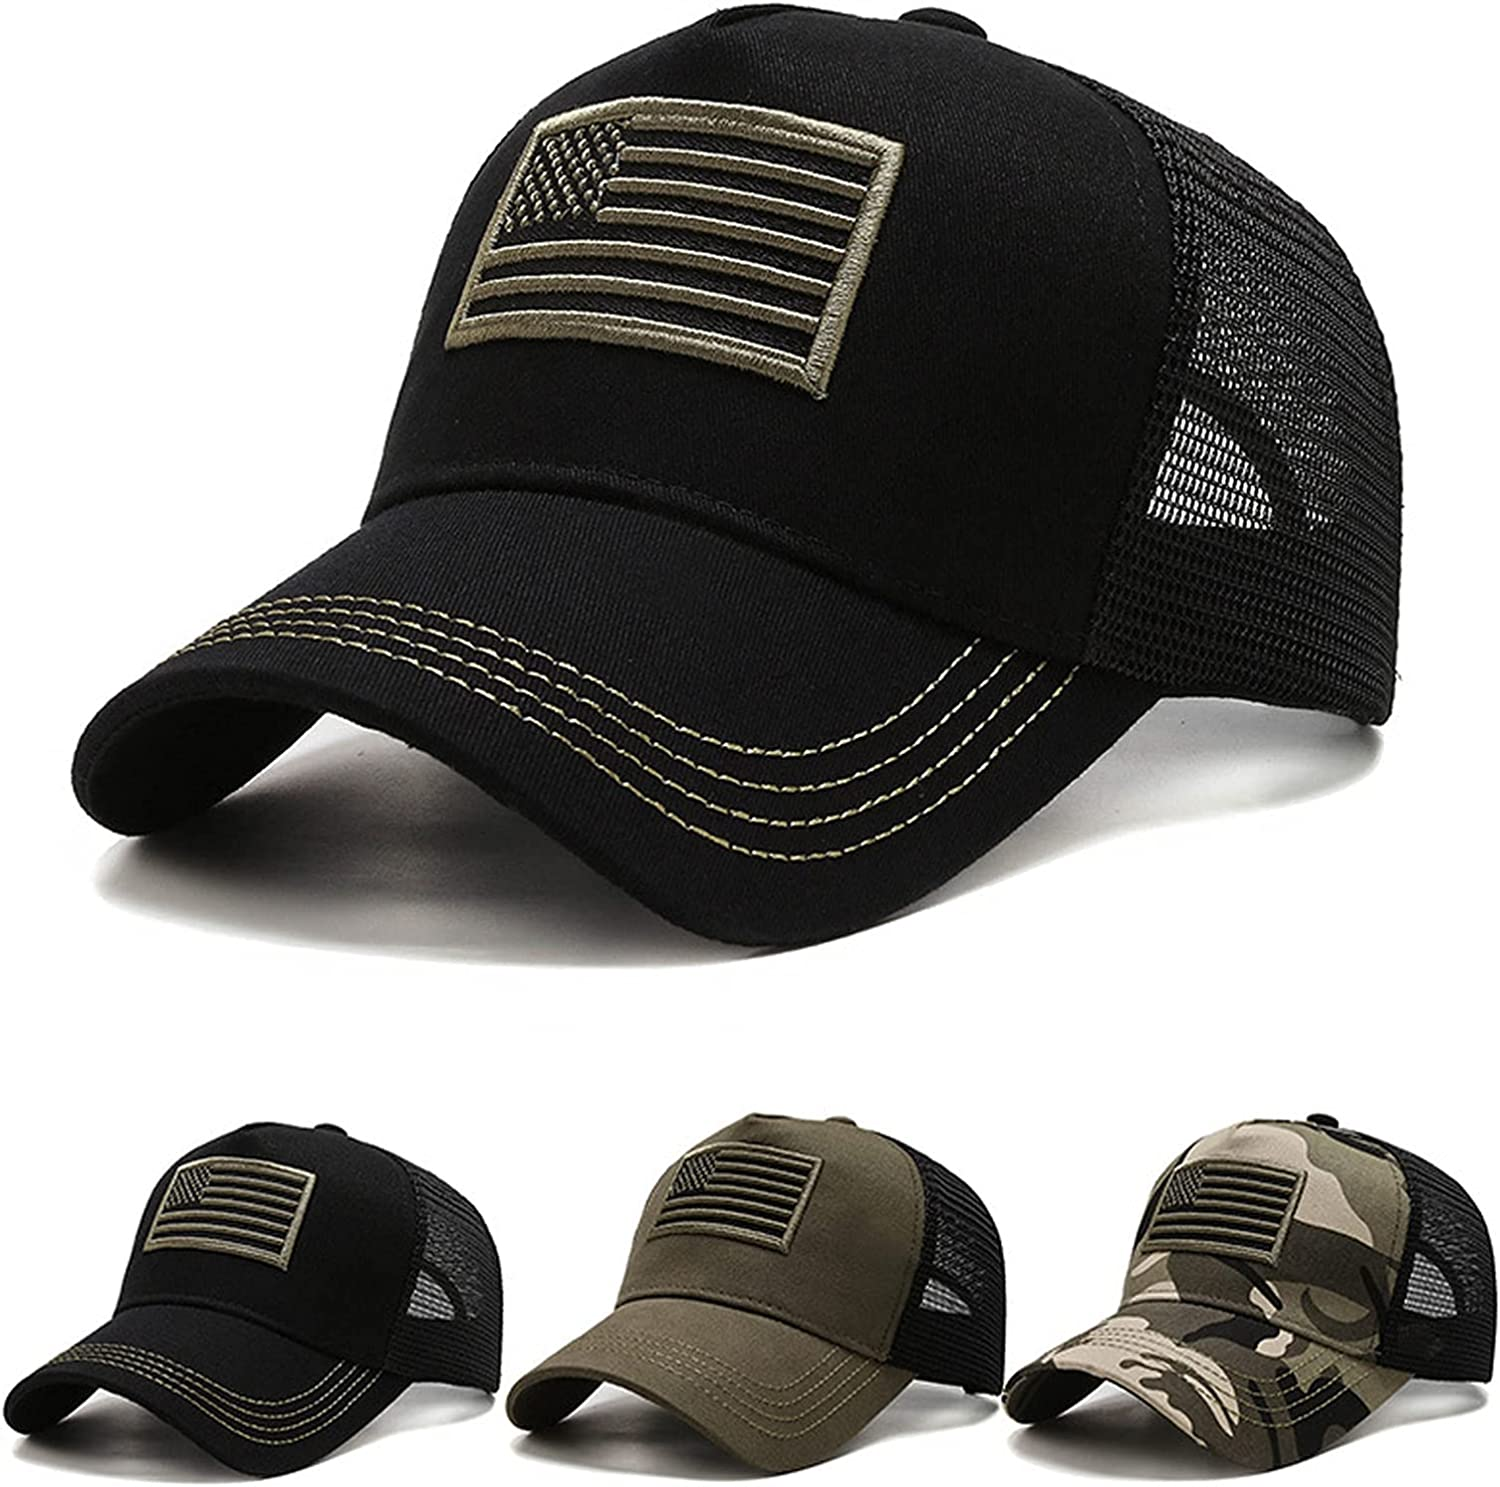 Men's and Women's American Flag Camouflage Baseball Cap Embroidery Adjustable Mesh Sun Hat